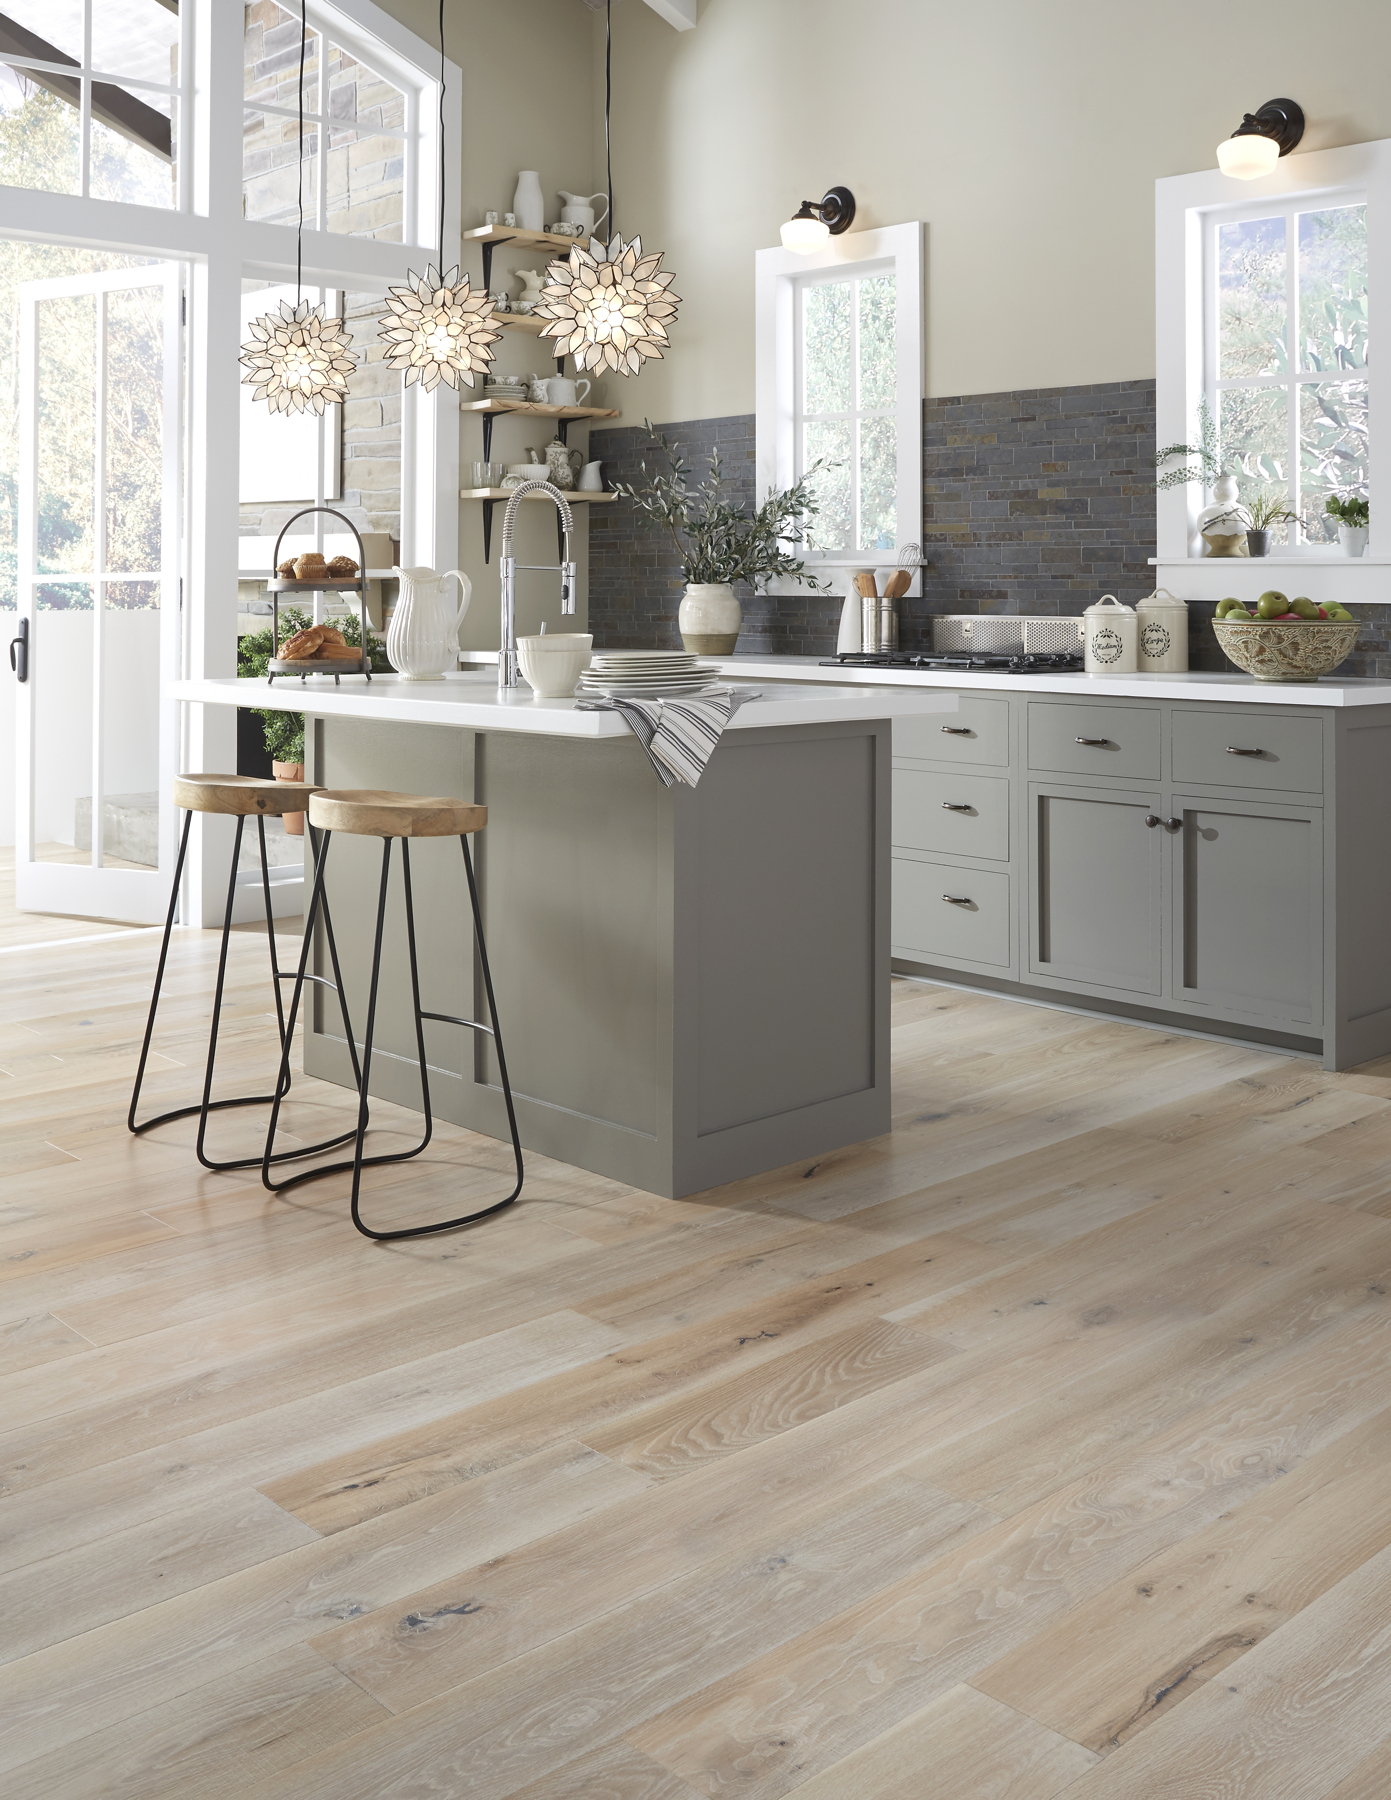 hardwood floor designs. Mannington\u0027s 2017 Hardwood Flooring Designs Are Said To Combine Rustic Elements With Softer, Less Saturated Hues For A Clean Aesthetic. Floor